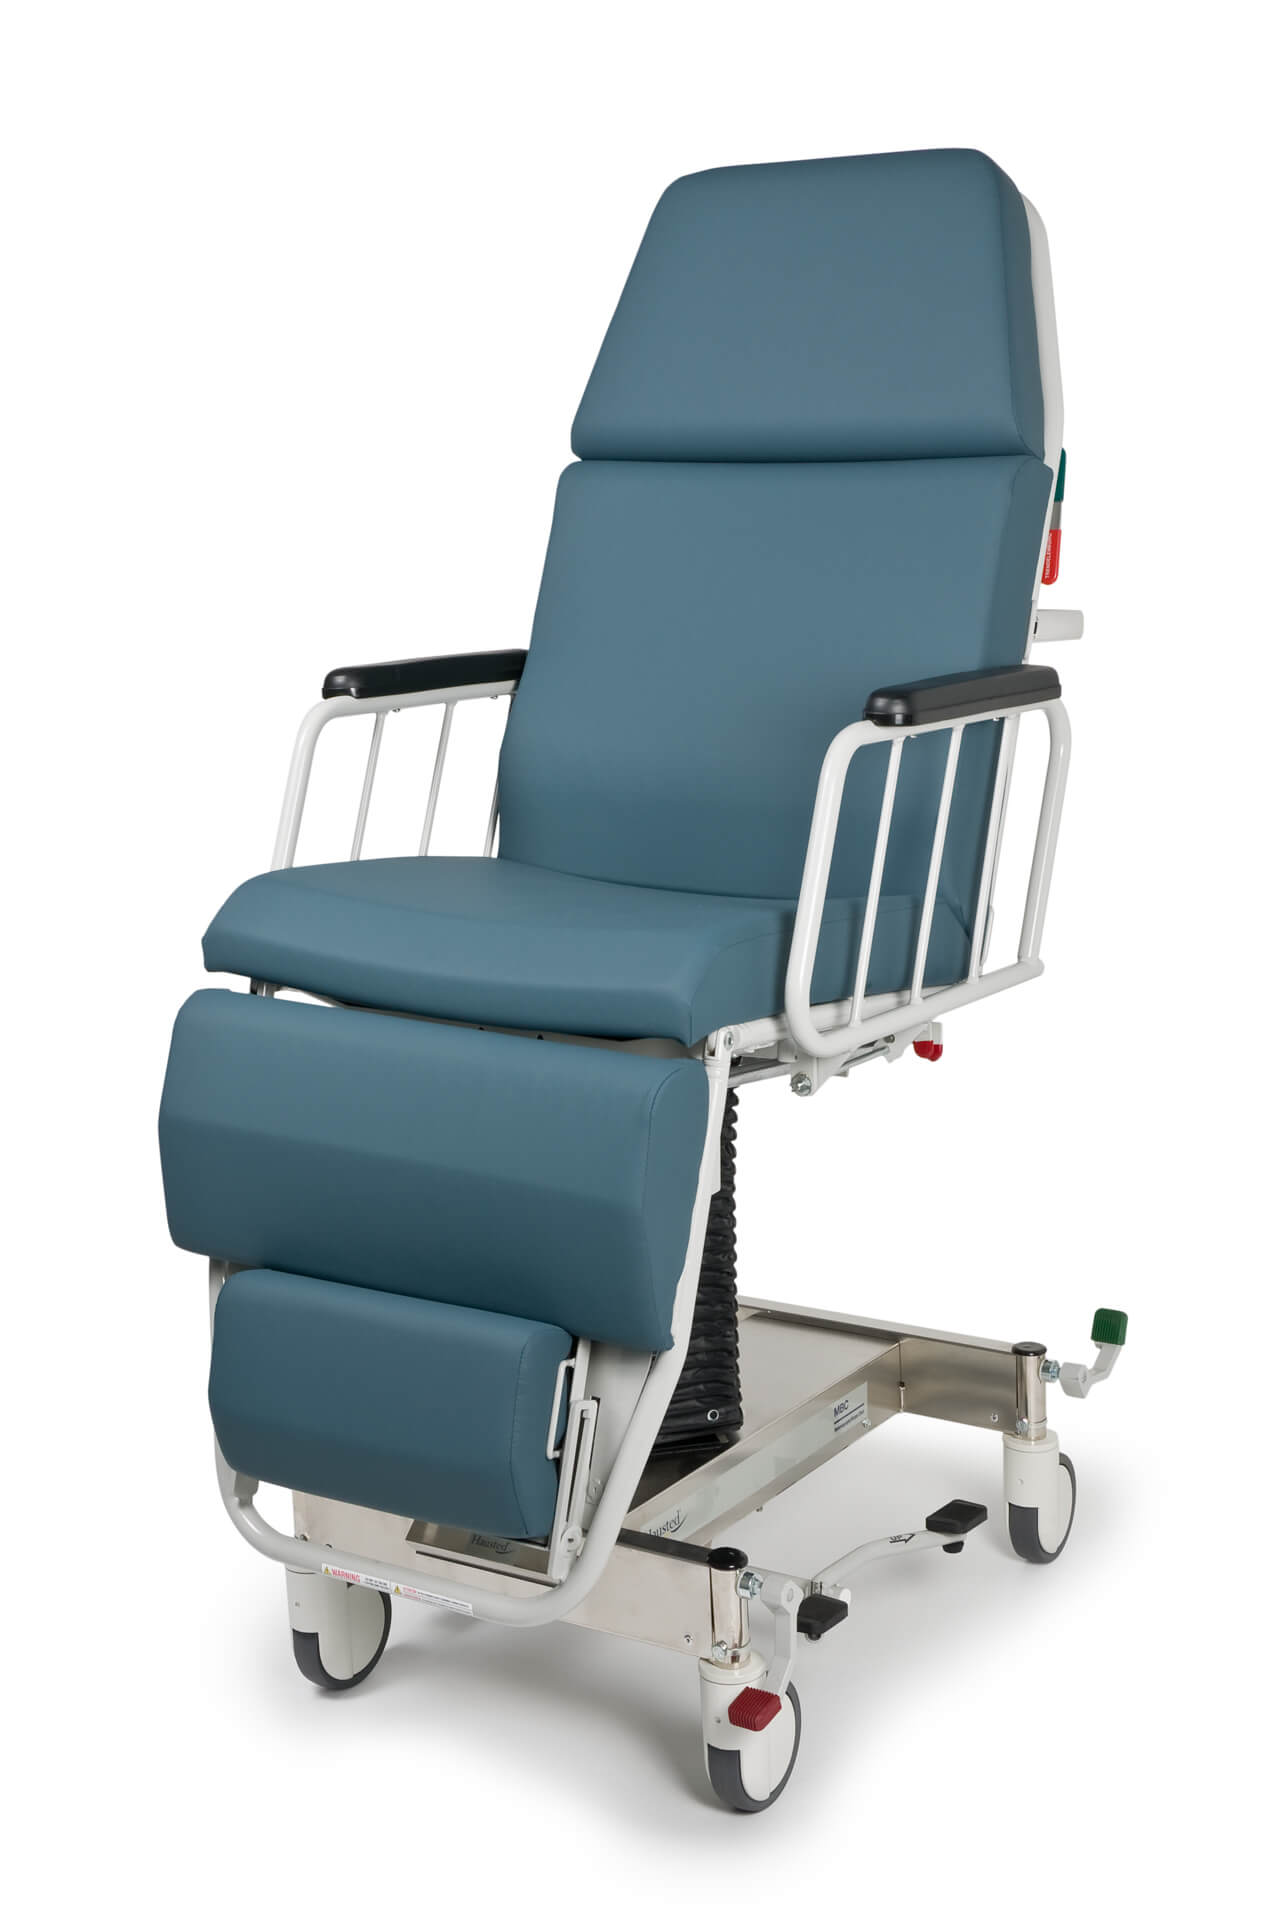 Hausted Mammography Chair